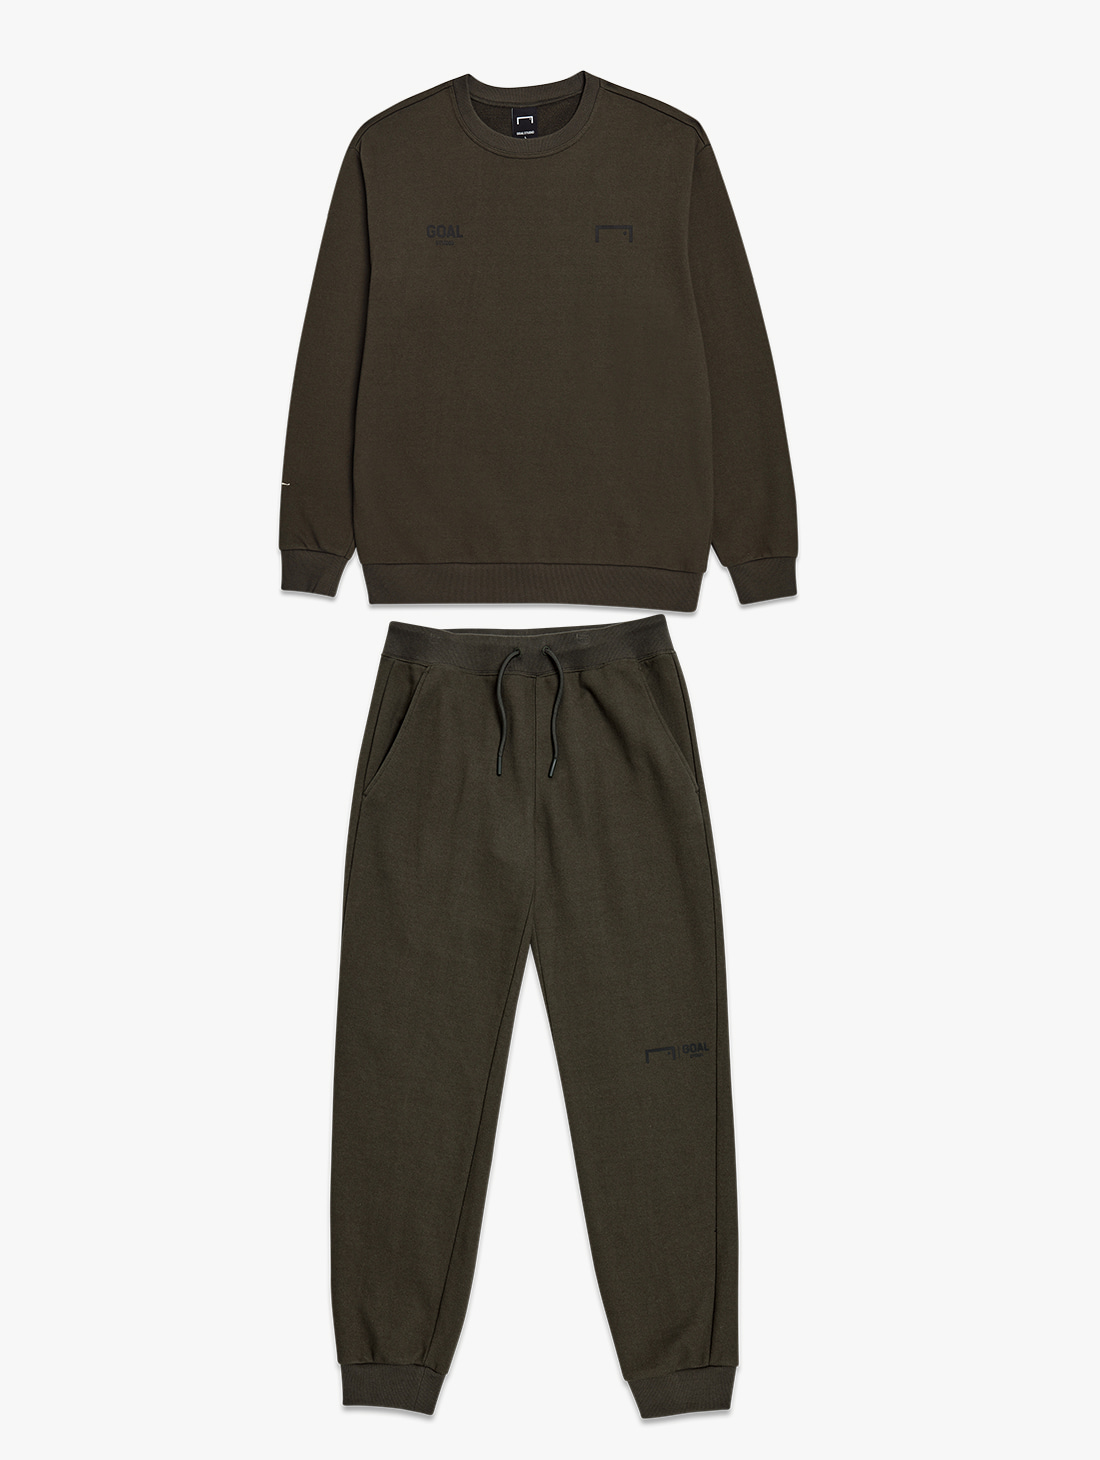 [10% OFF] SIGNATURE LOGO SWEATSHIRT & GOAL KNIT JOGGER PANTS 2.0 SET